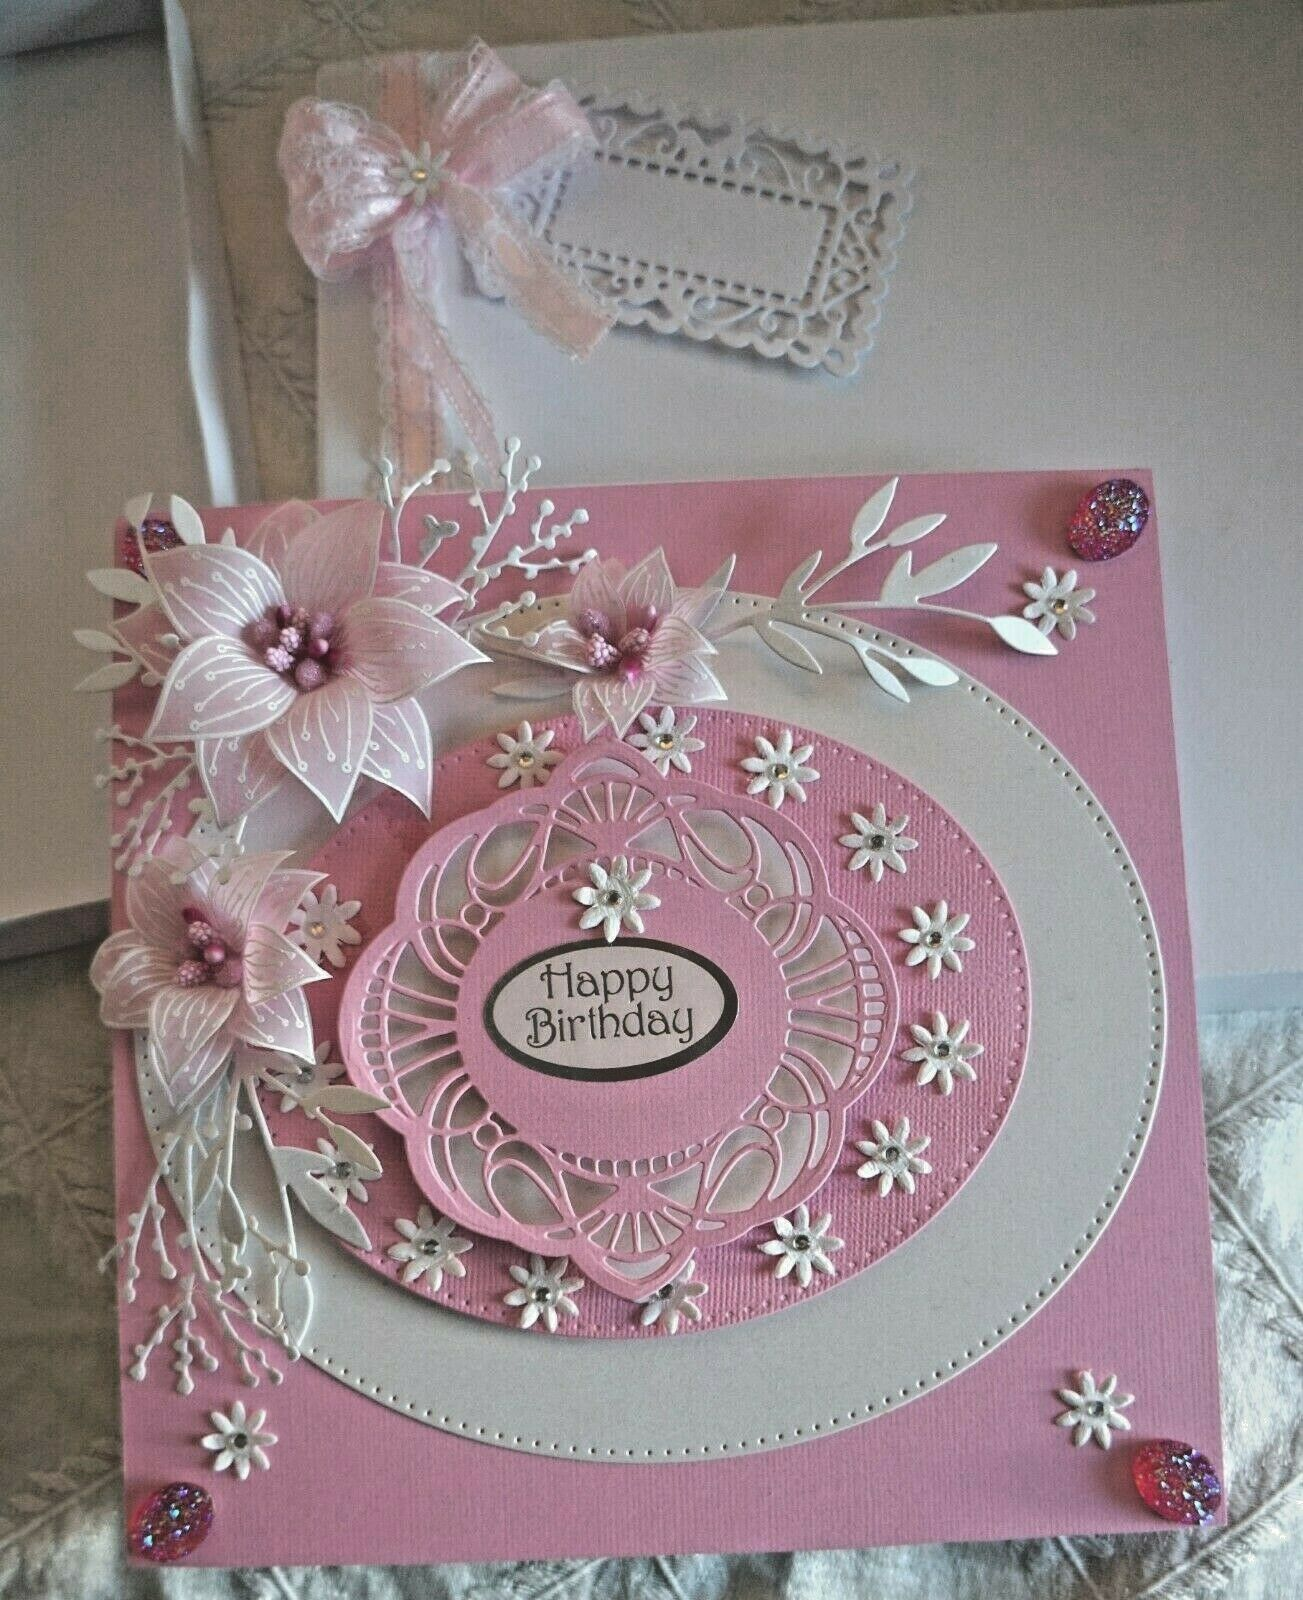 Swell Beautiful Hand Made 8 X 8 Birthday Card In Pink With Personalised Birthday Cards Rectzonderlifede